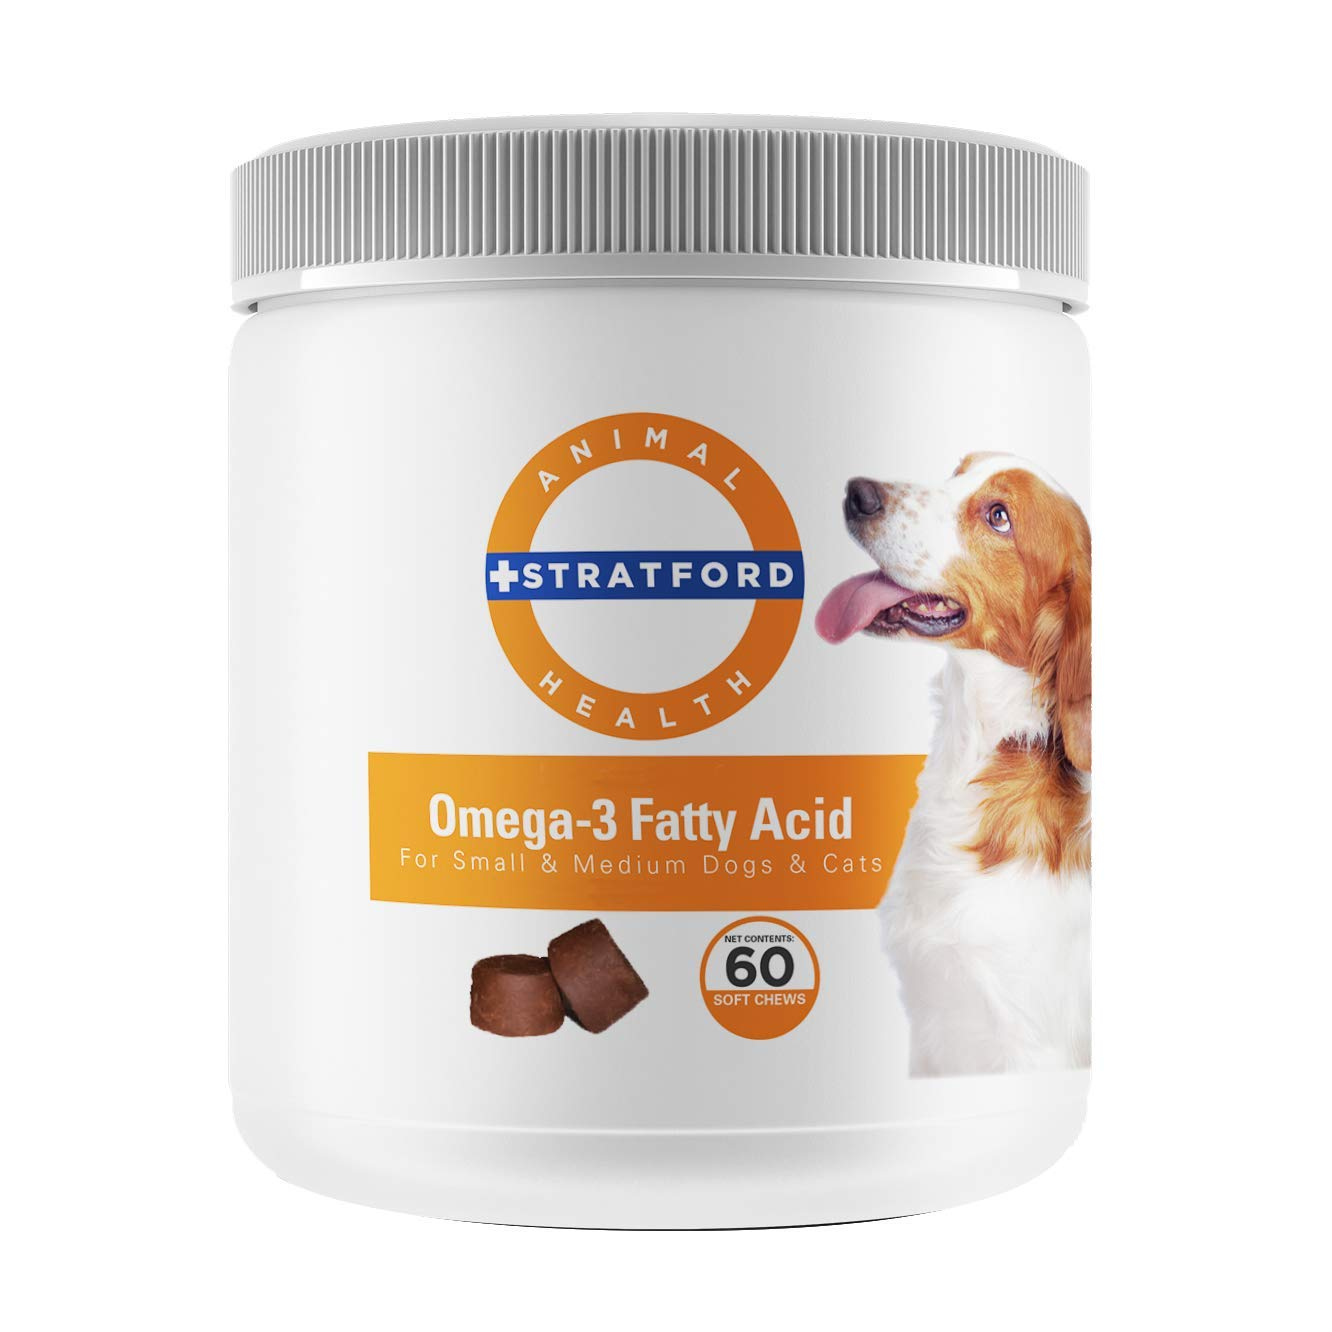 Stratford Pharmaceuticals Omega 3 Fatty Acid Soft Chew Max Strength - Dog Omega 3 Supplement - Soft Chew Treats with Fish Oil for Dogs - Small and Medium Dogs - 60 Soft Chews by Stratford Pharmaceuticals